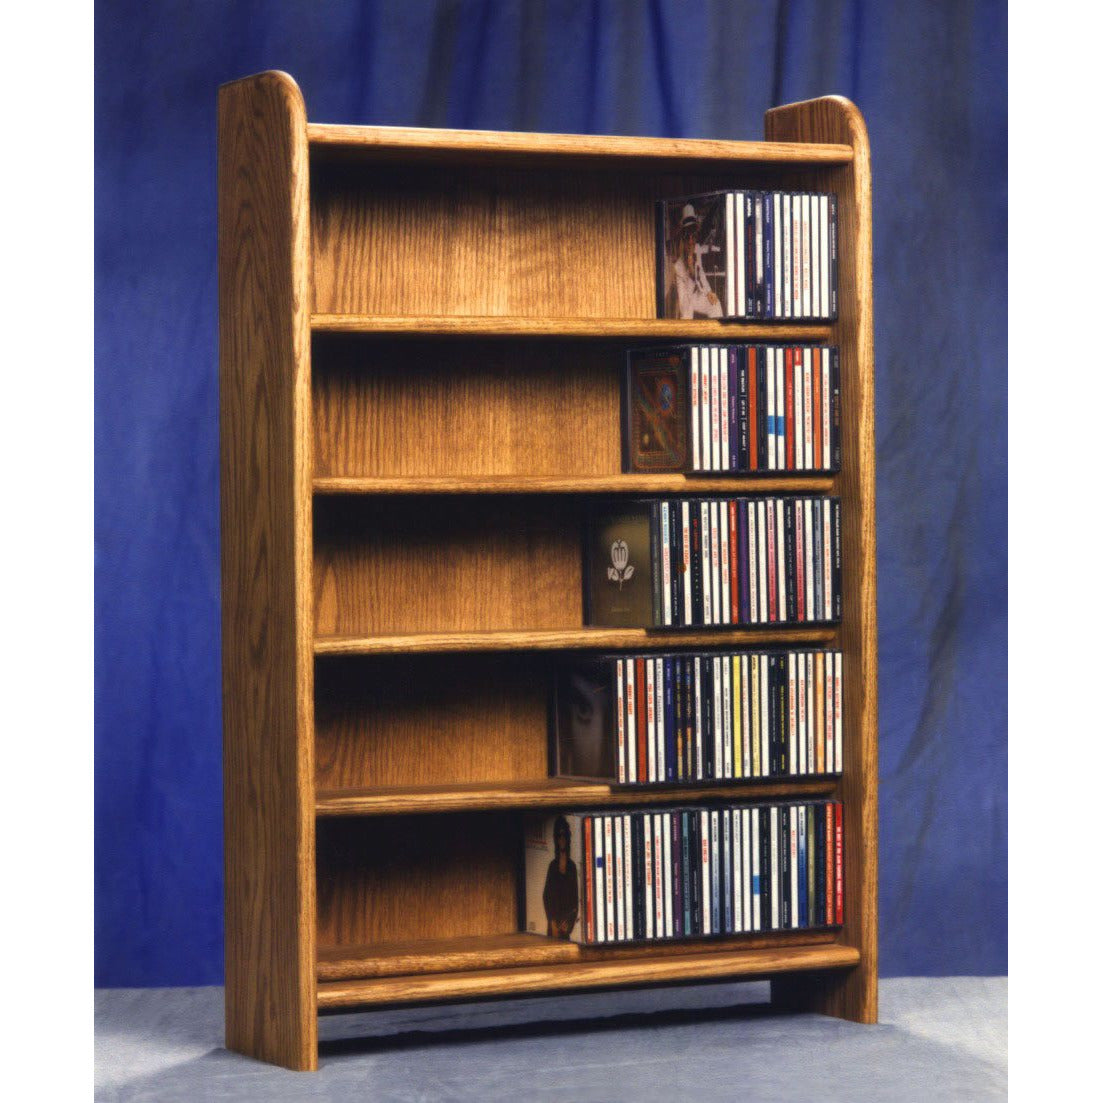 CD storage cabinet - honey oak finishs or 360 audio tapes in an attractive, solid wood media rack